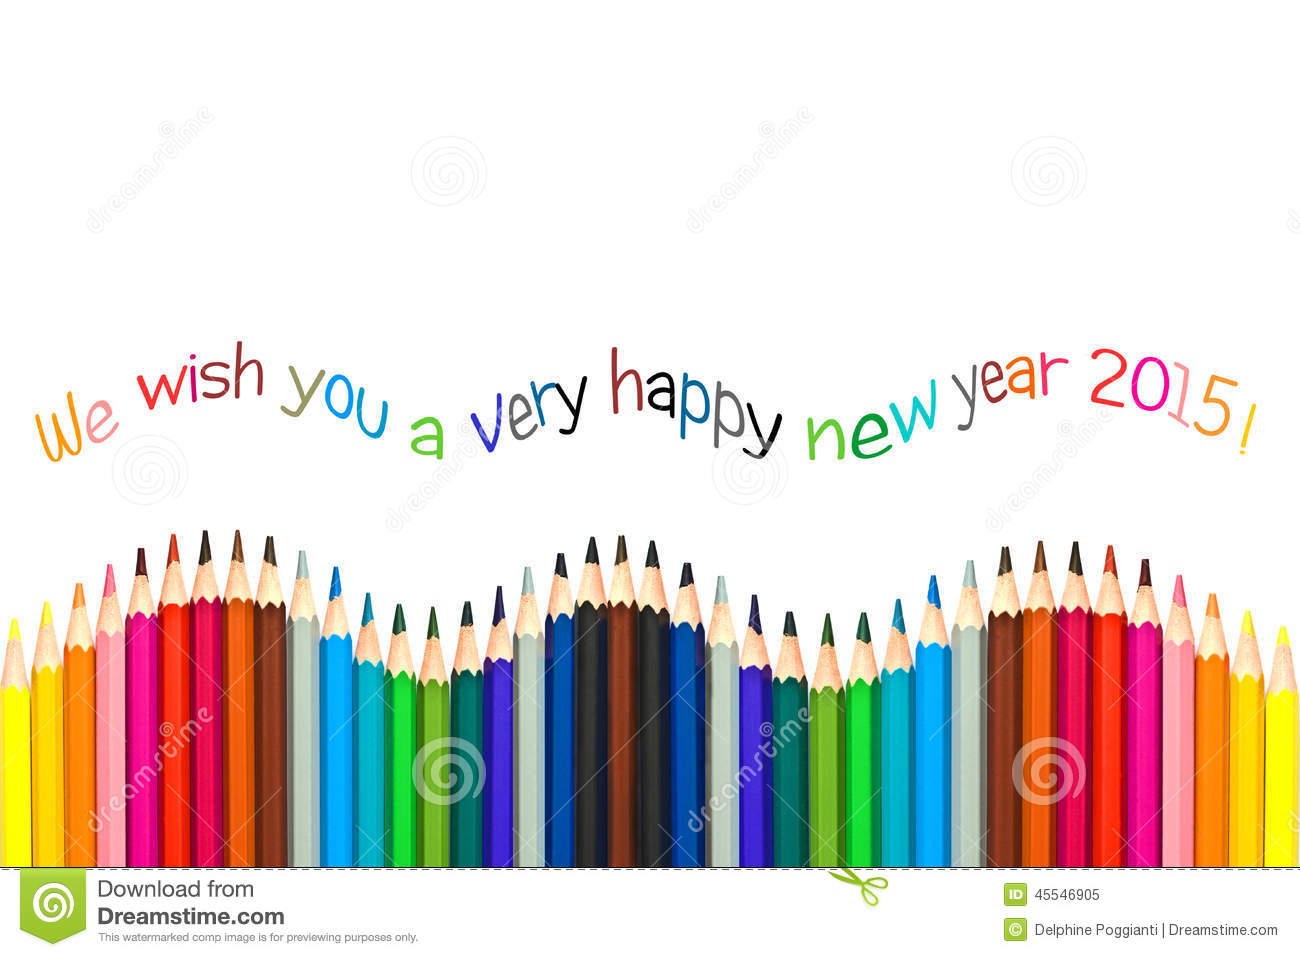 Happy new year 2015 greeting card colorful pencils stock image happy new year 2015 greeting card colorful pencils kristyandbryce Choice Image